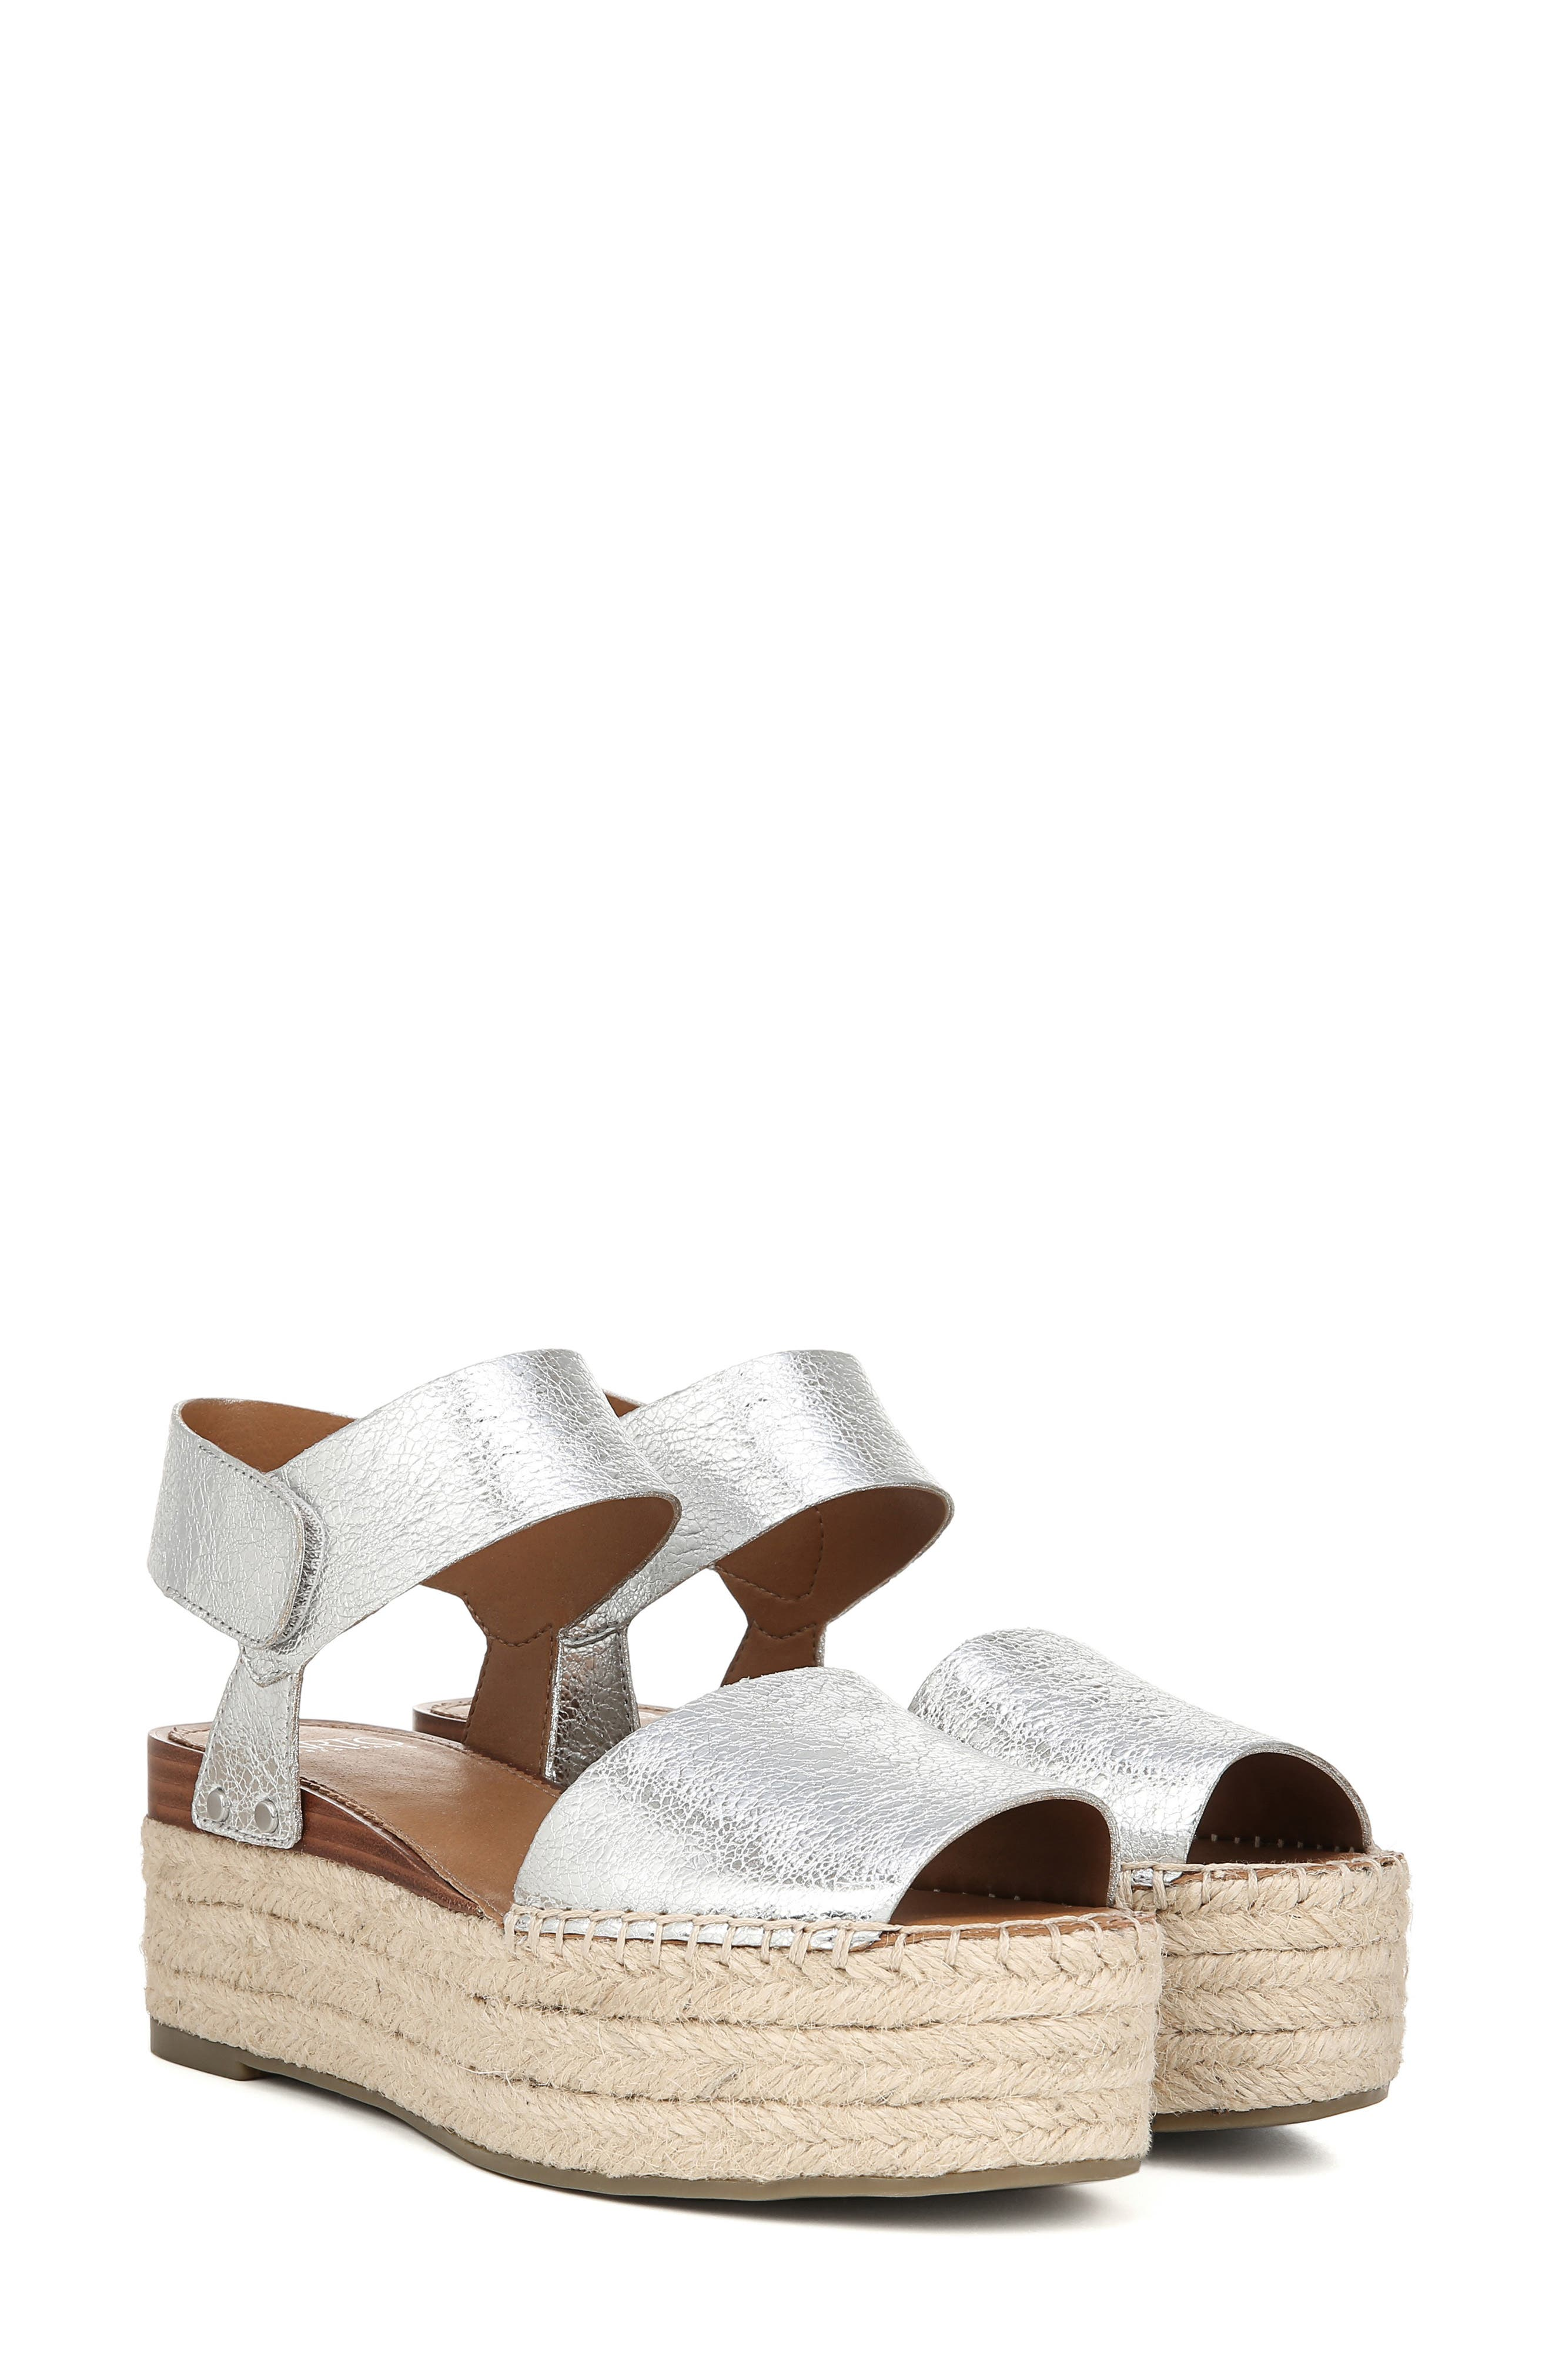 SARTO BY FRANCO SARTO, Leo Platform Espadrille Sandal, Alternate thumbnail 8, color, SILVER LEATHER